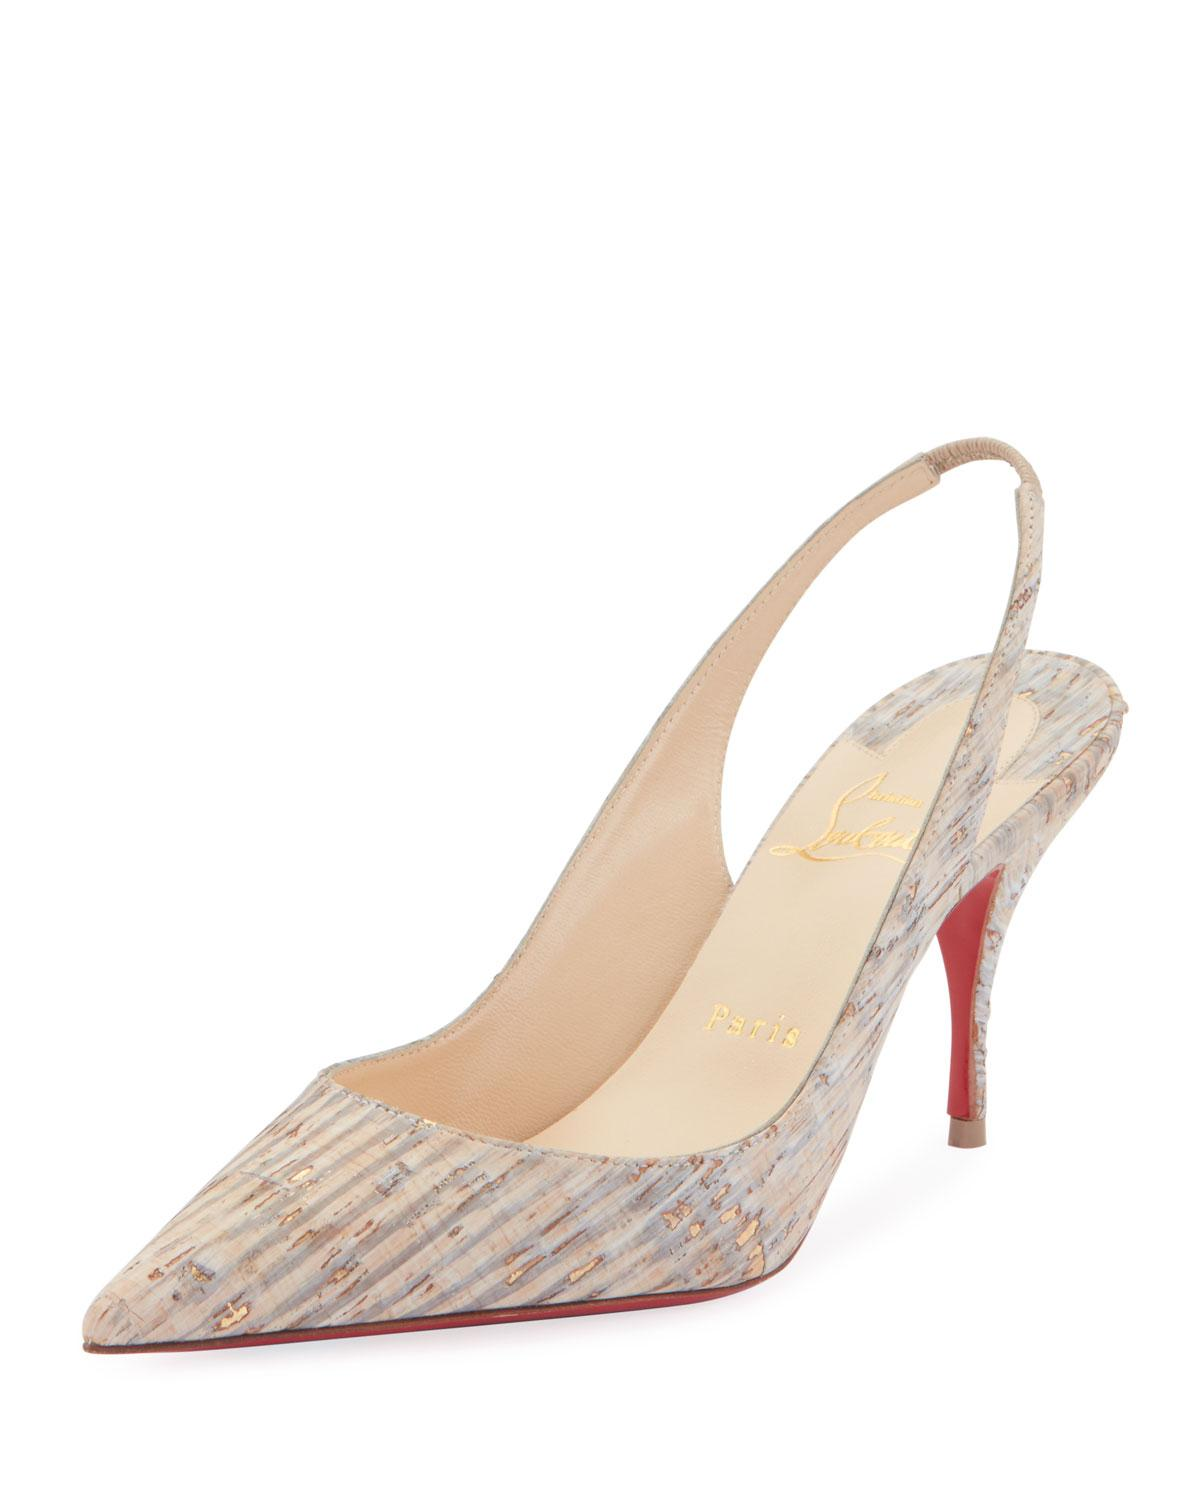 a2ff07f21cc8 Lyst - Christian Louboutin Clare Cork Red Sole Slingback Pumps in ...